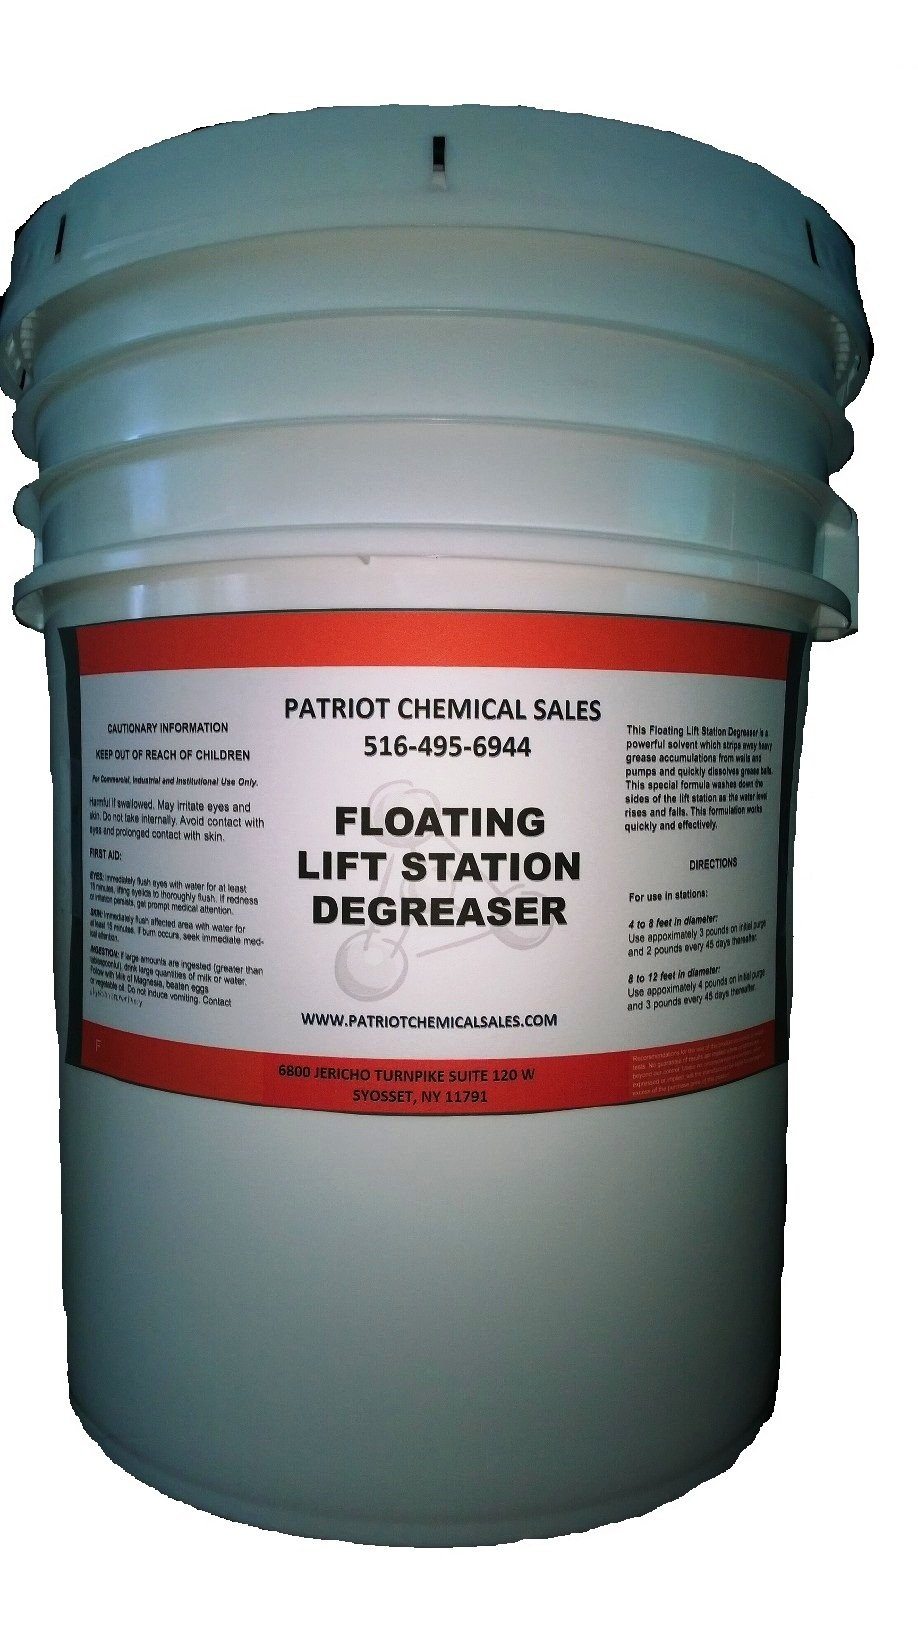 Patriot Chemical Sales 25 Pounds Floating Lift Station Degreaser Granule Industrial Strength